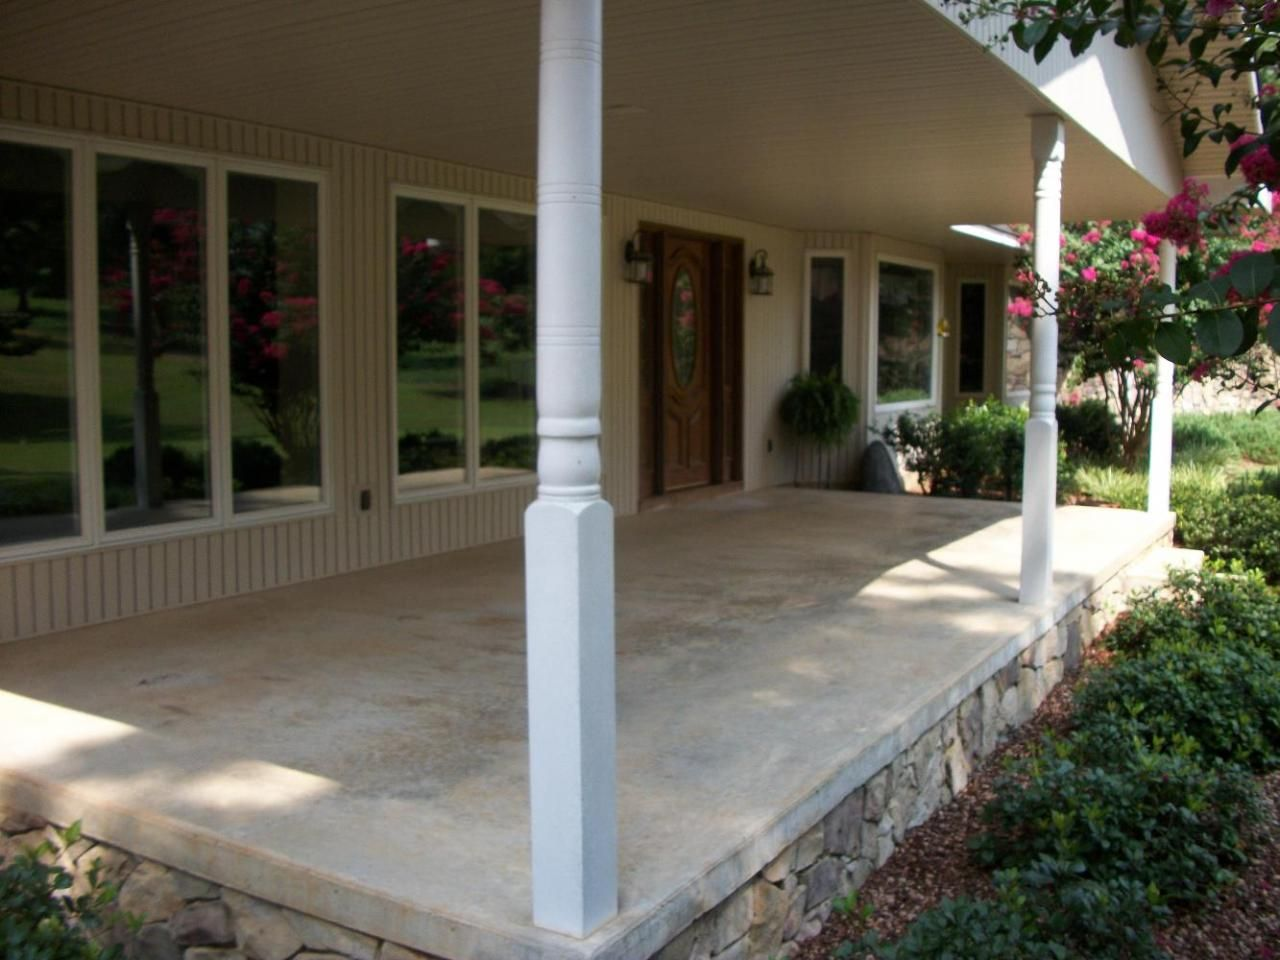 Image Result For Concrete Porch Ideas Front Porch Design Small Front Porches Designs Porch Design